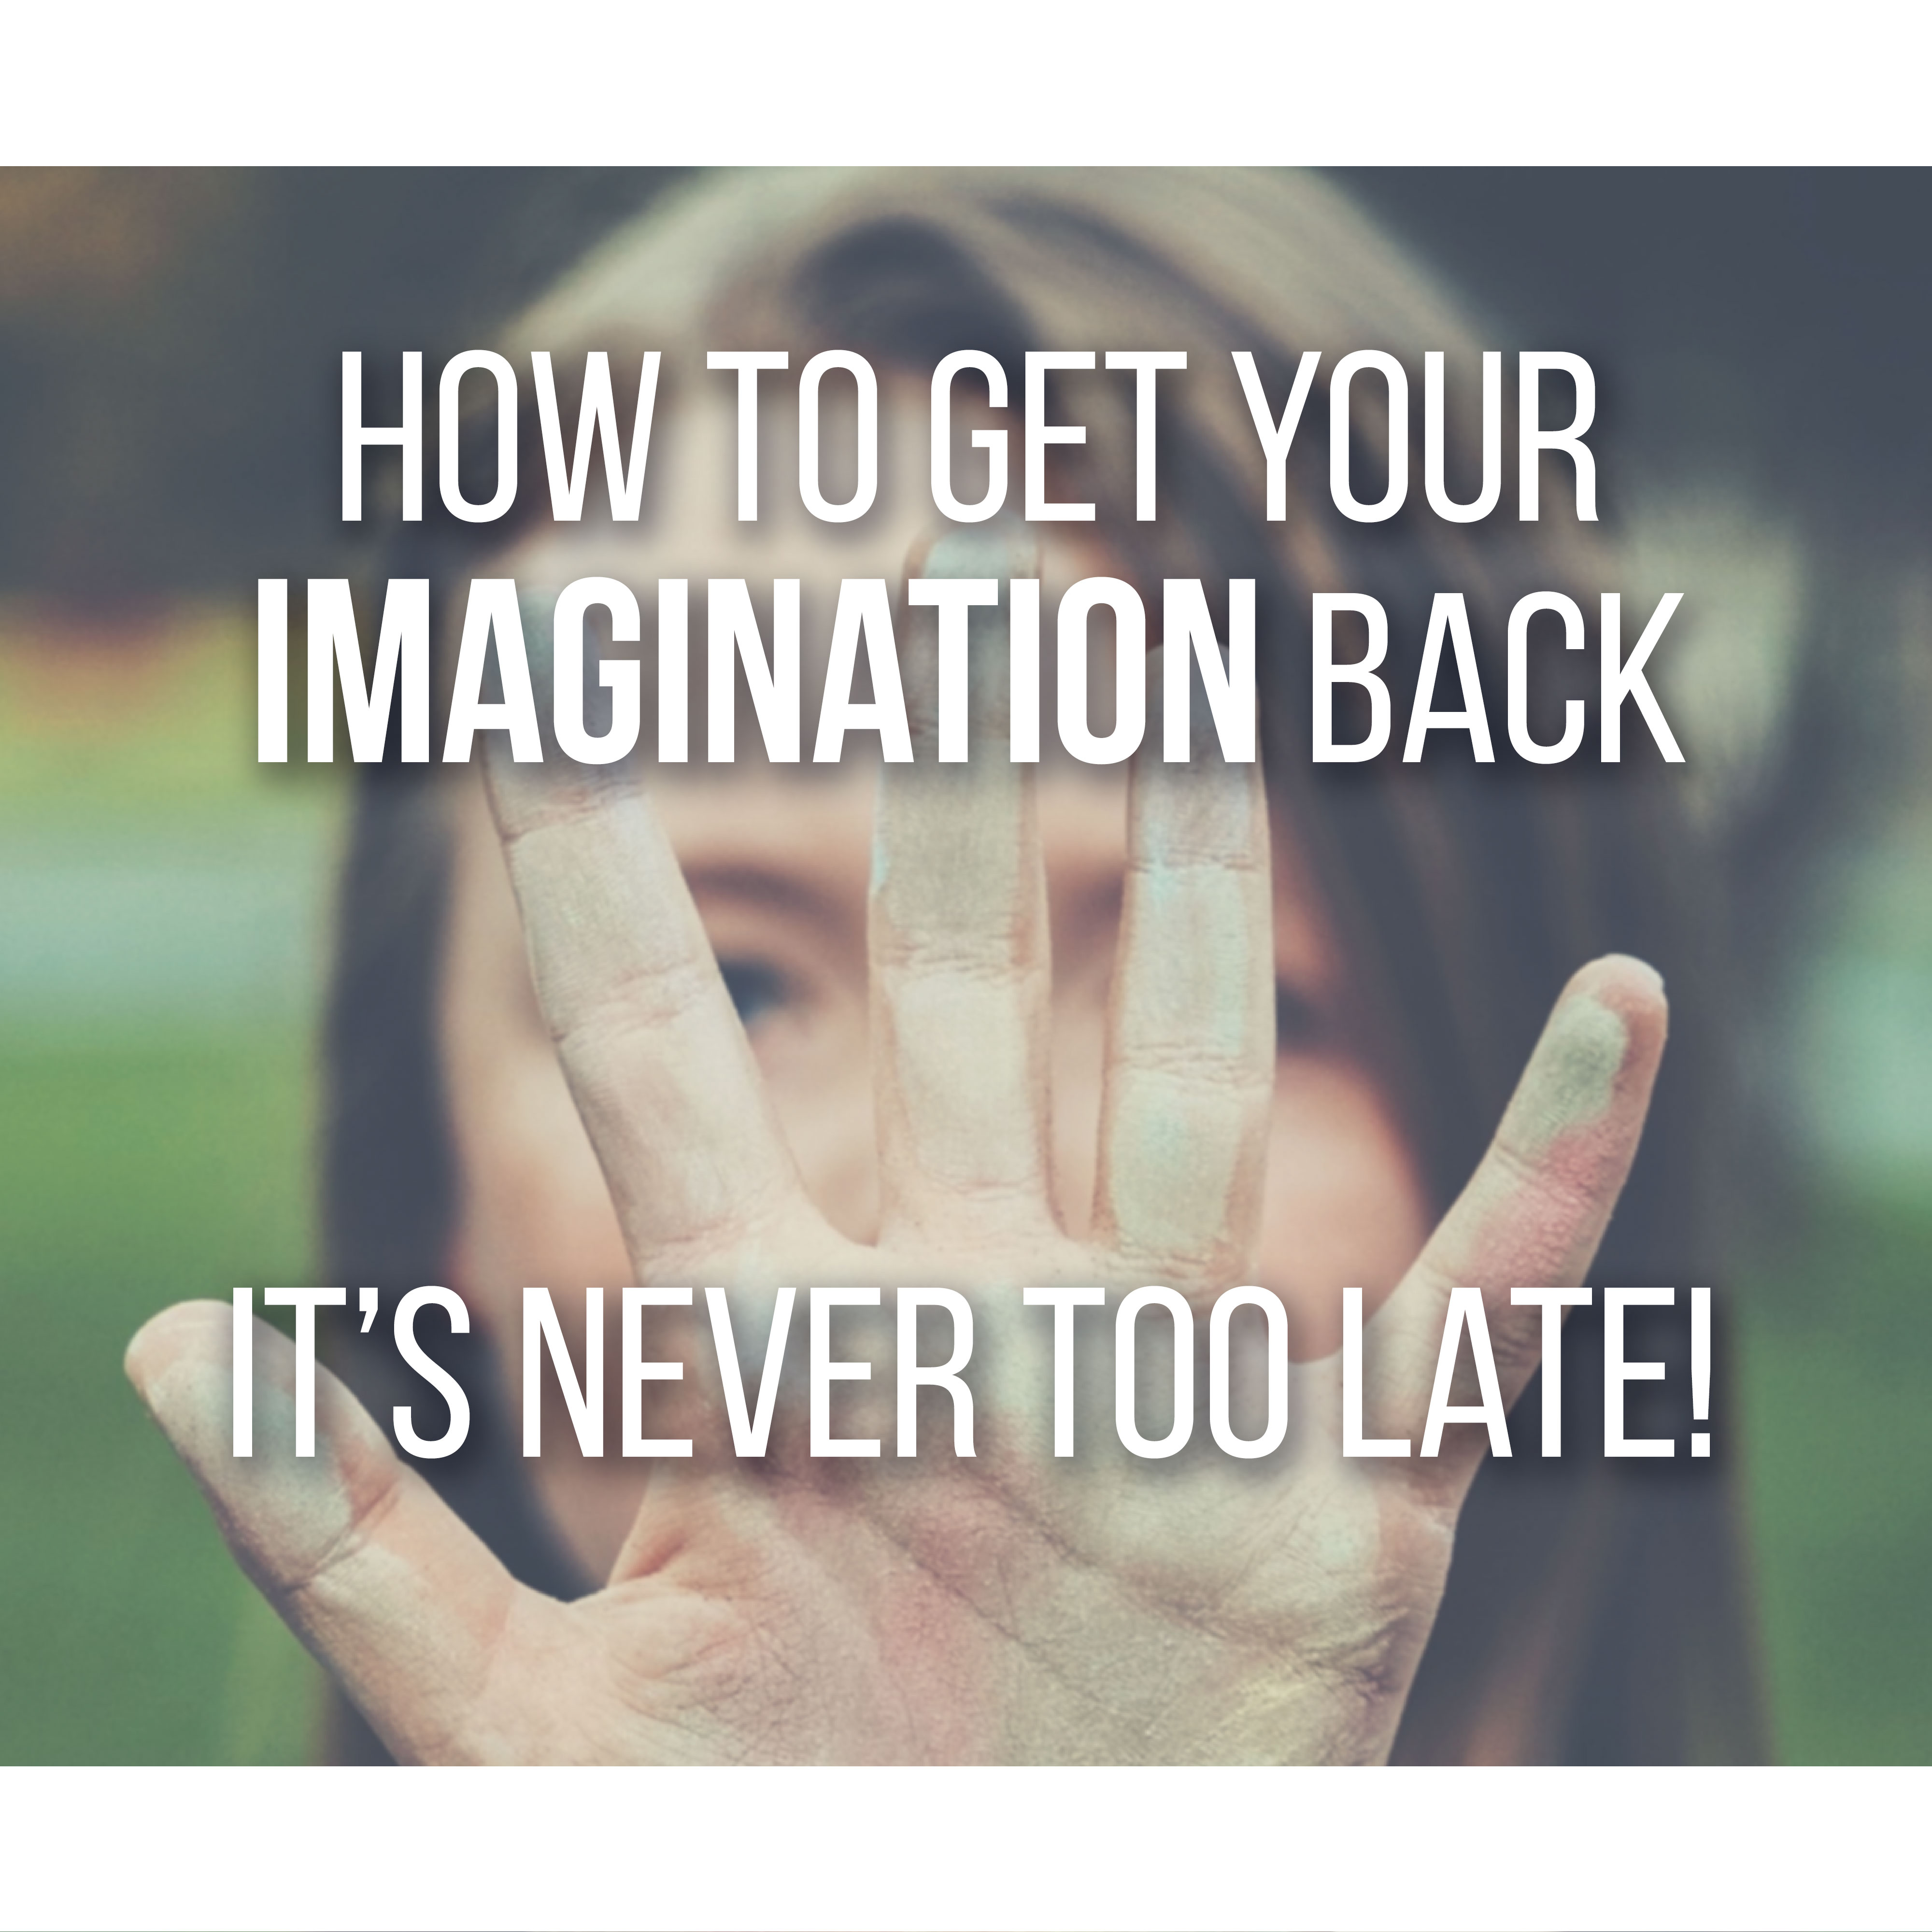 How to Get Your Imagination Back, It's Never too Late. Tips and Tricks by Don Corgi